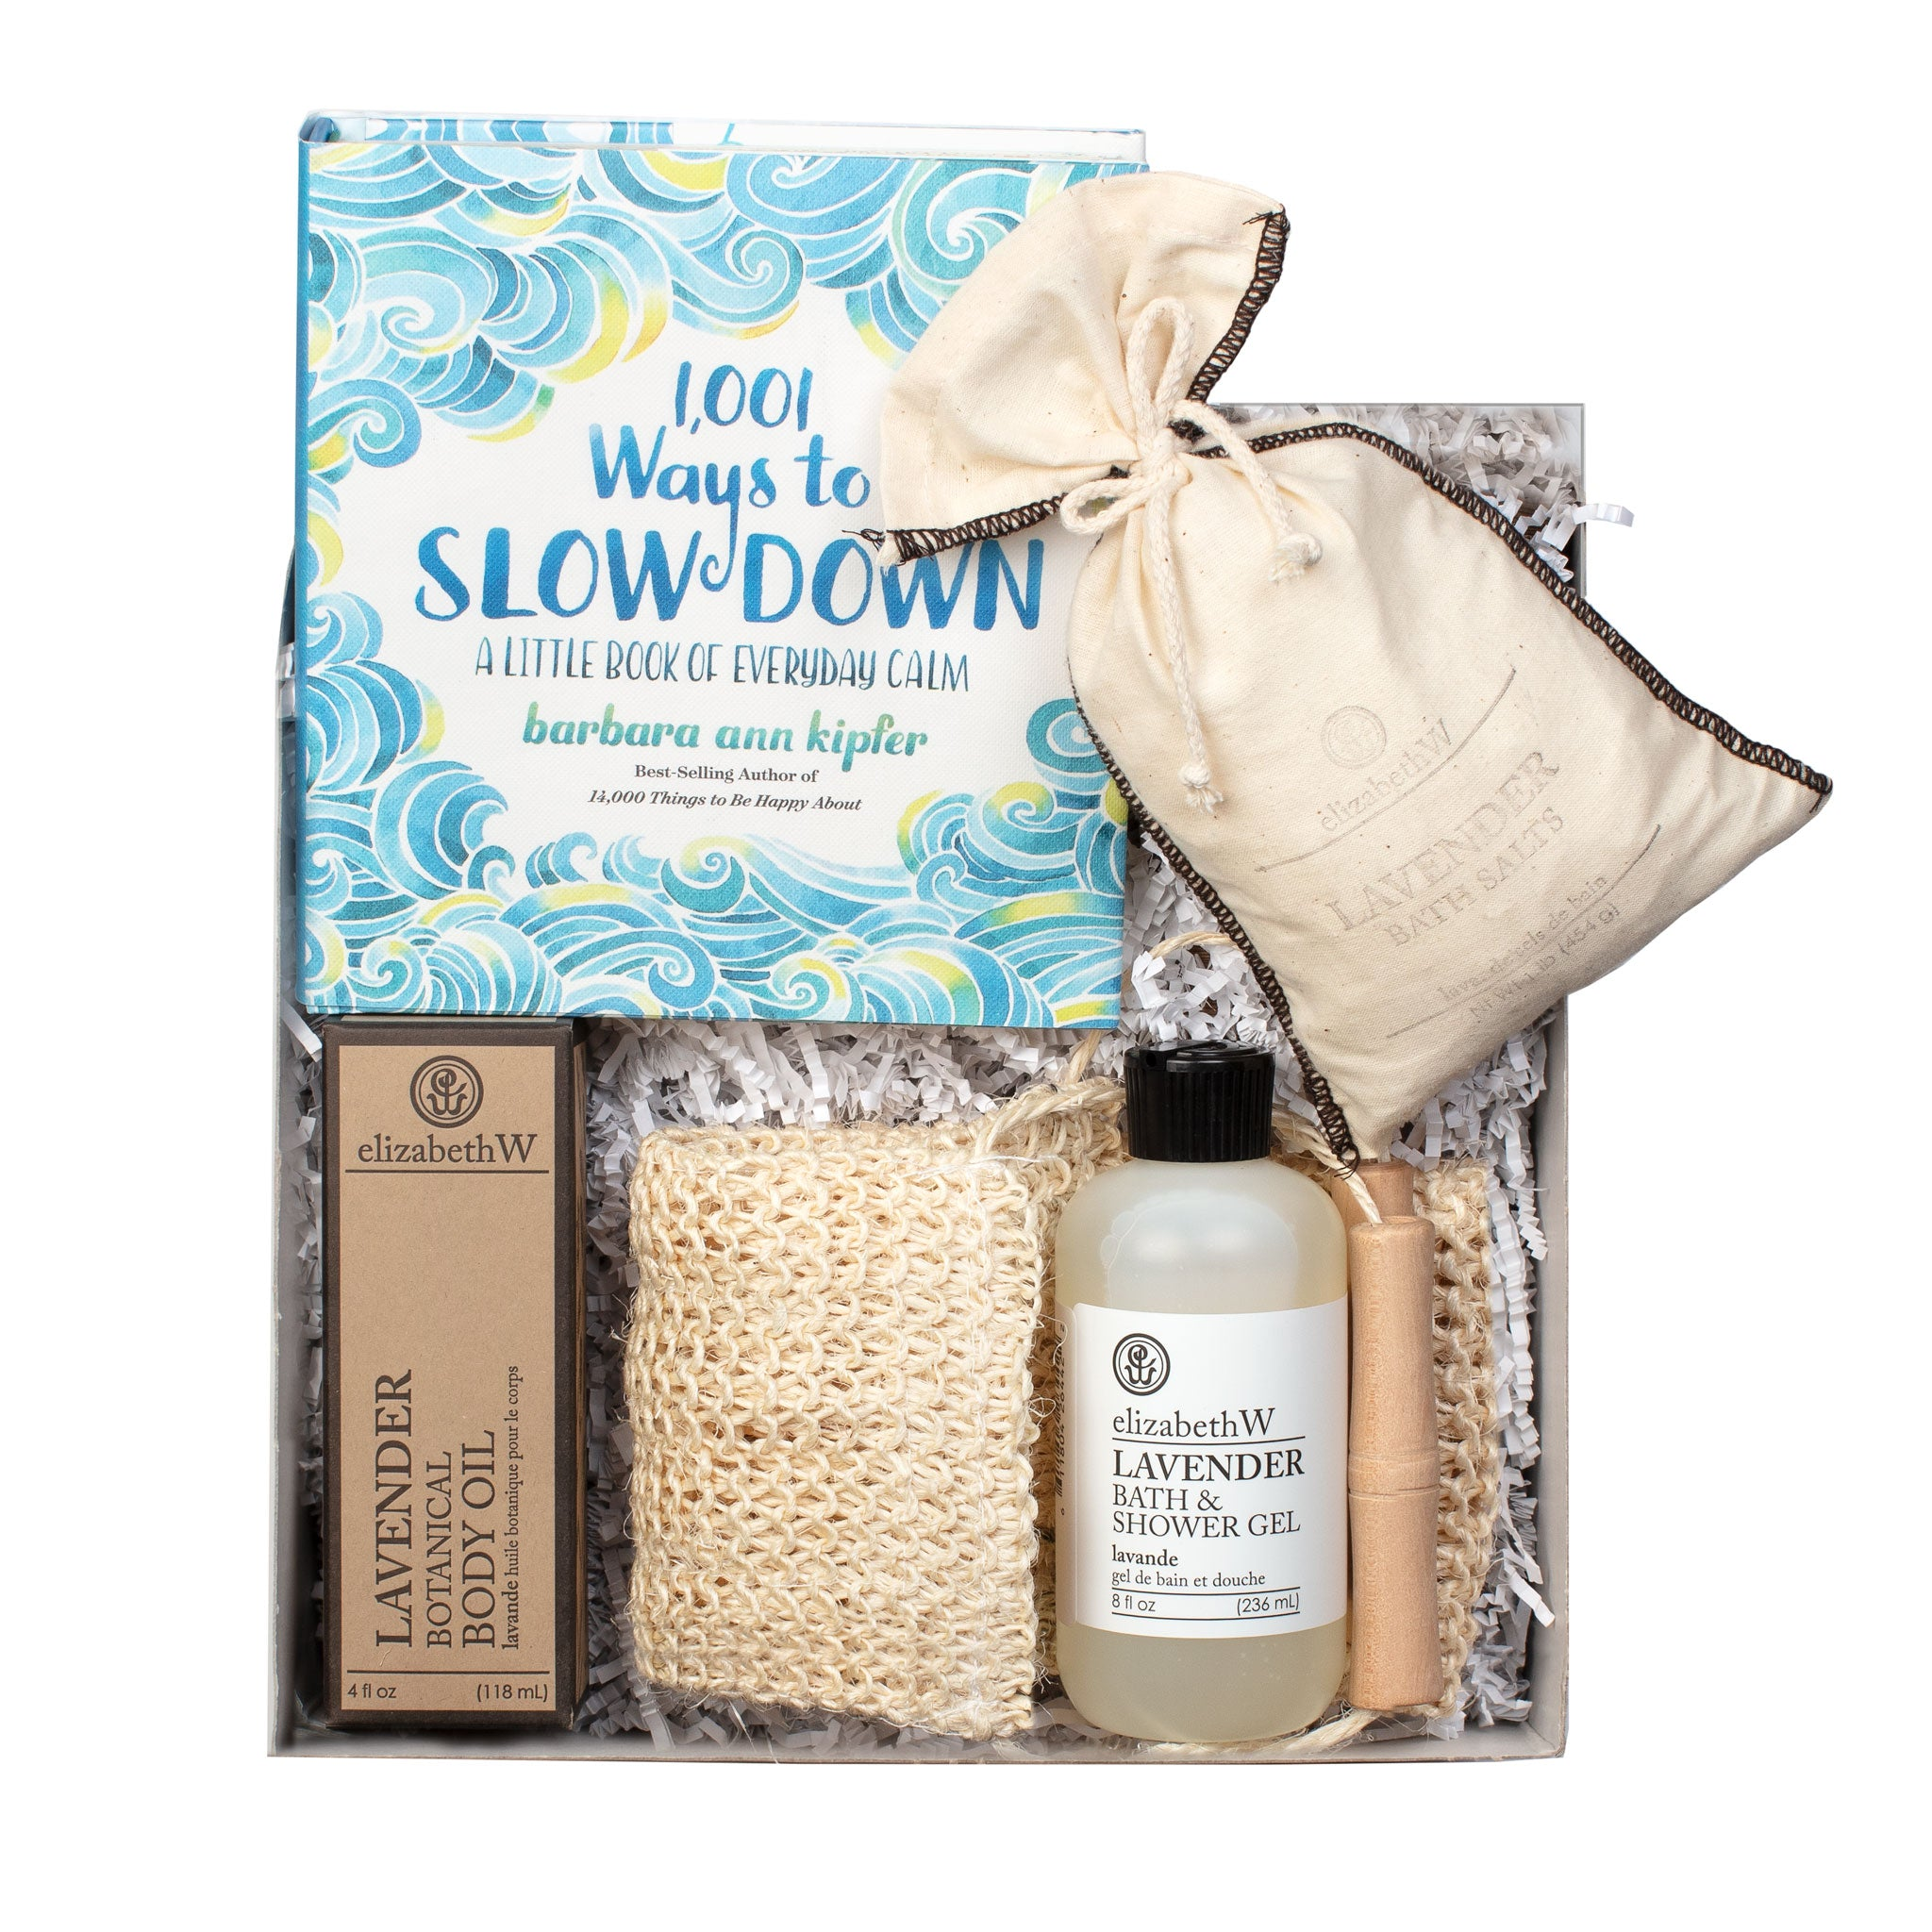 You Need to Calm Down Gift Set